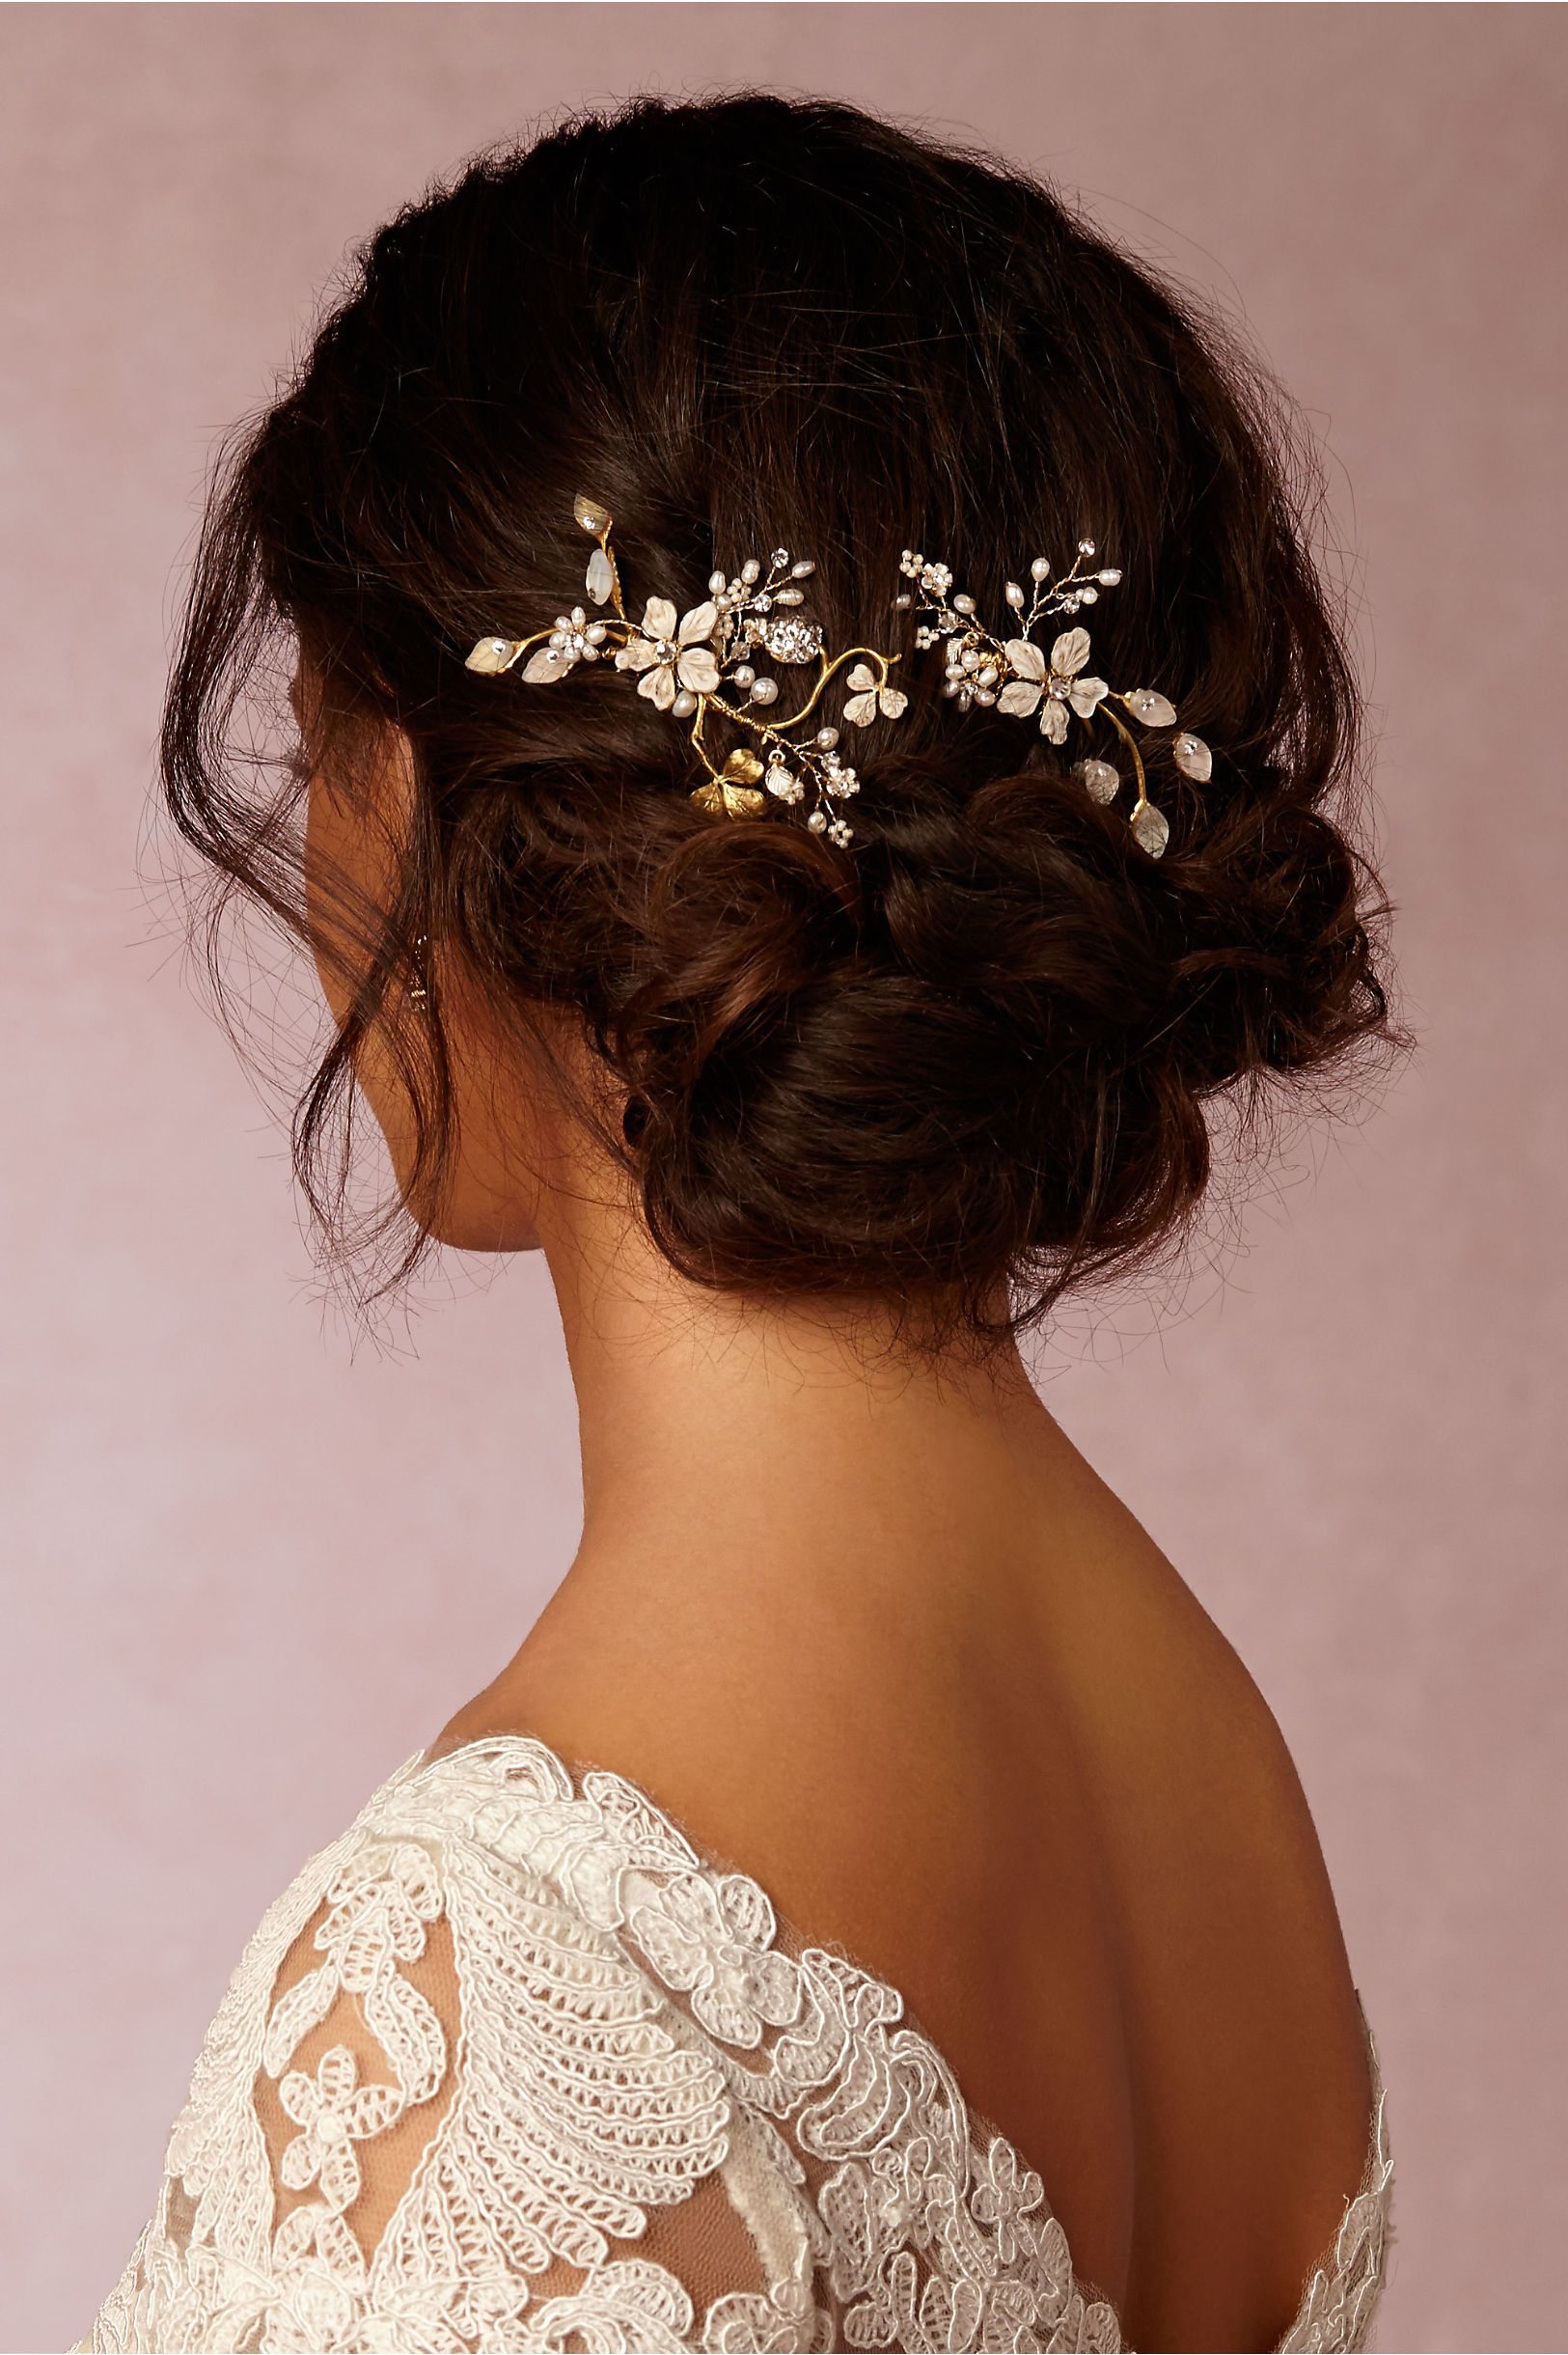 Hair accessories for updos hairstyles - Bhldn Winter Garden Combs In Shoes Accessories Headpieces At Bhldn